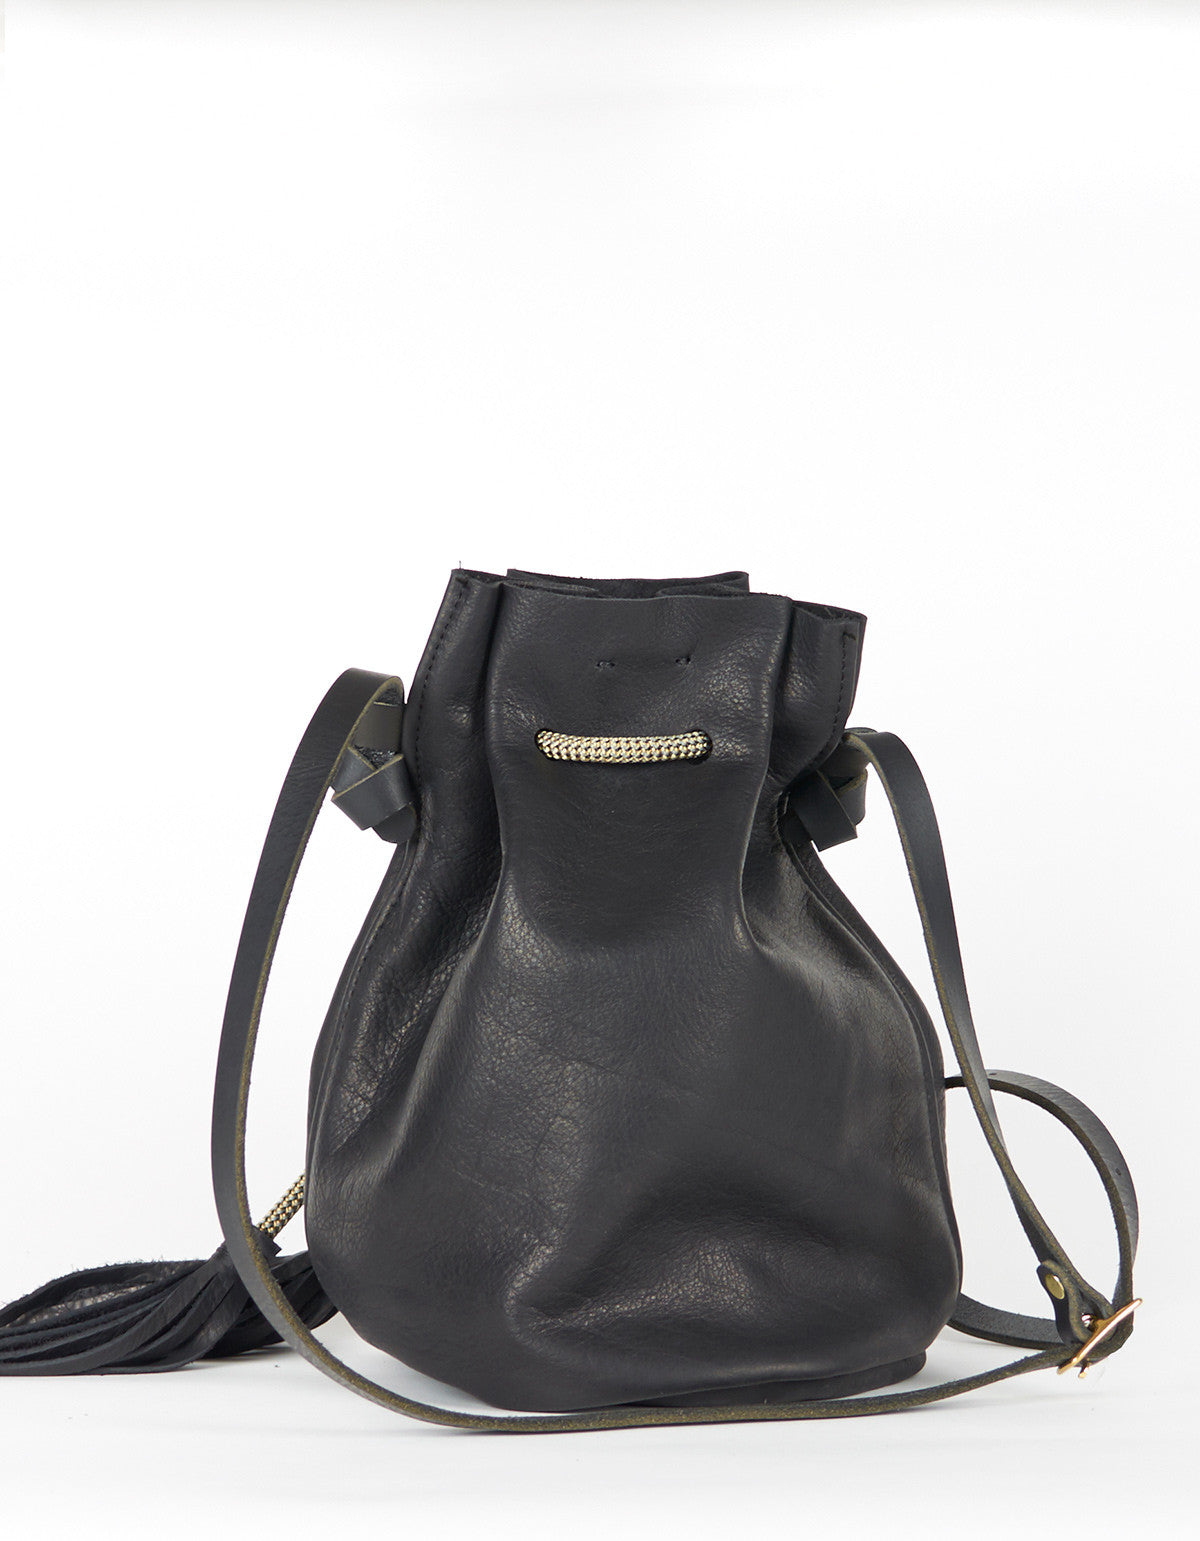 Eleven Thirty Christie Large Bucket Bag Black - Still Life - 3